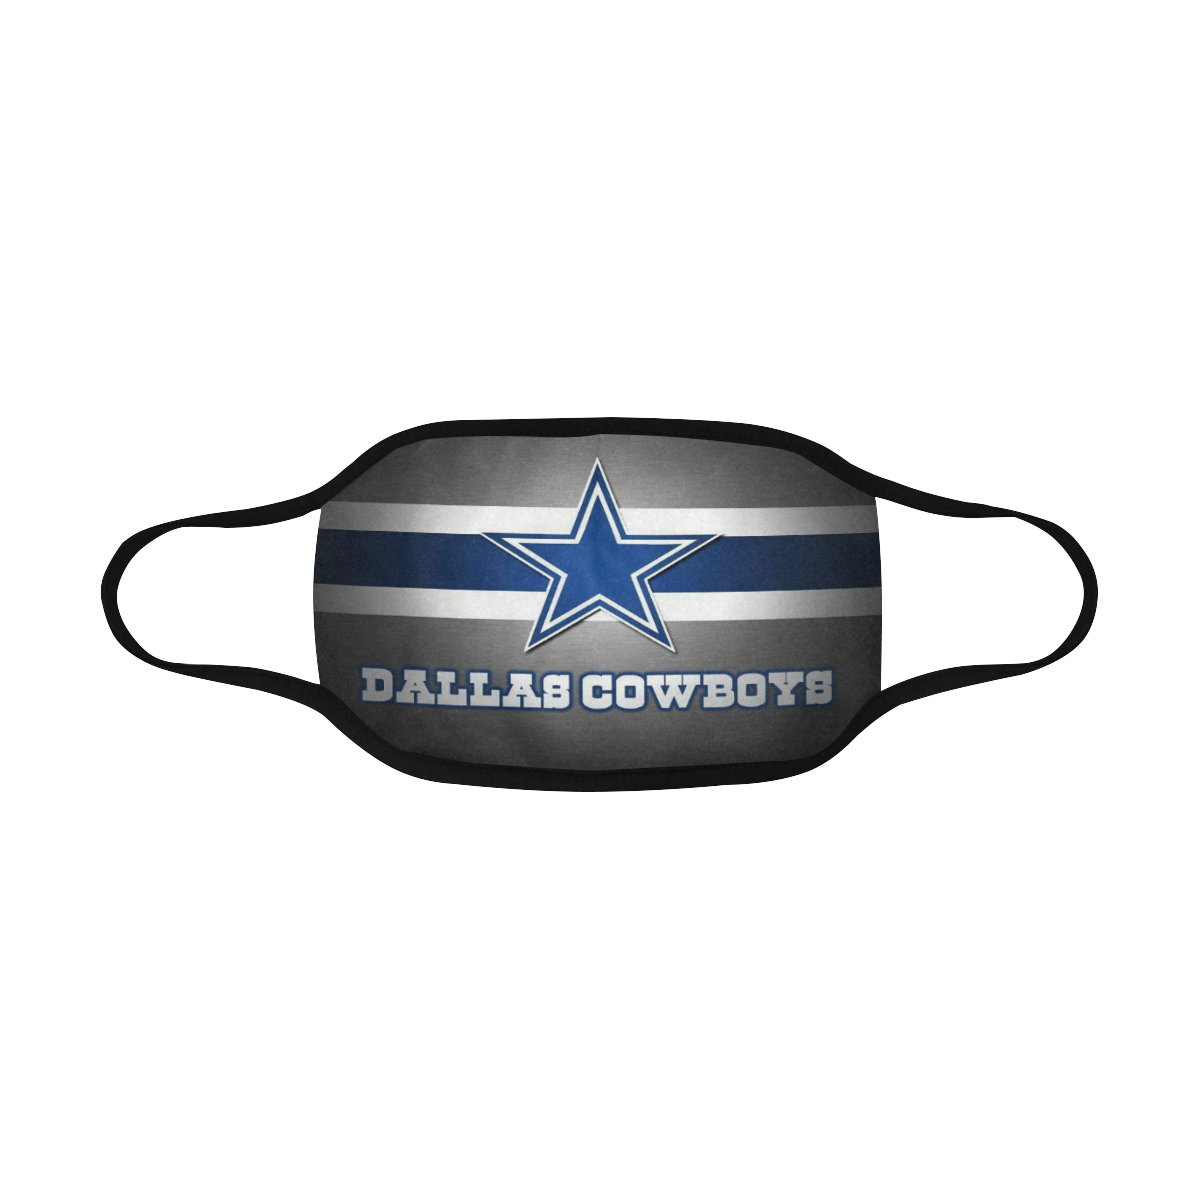 Dallas Cowboys Face Mask - Adults Mask PM2.5